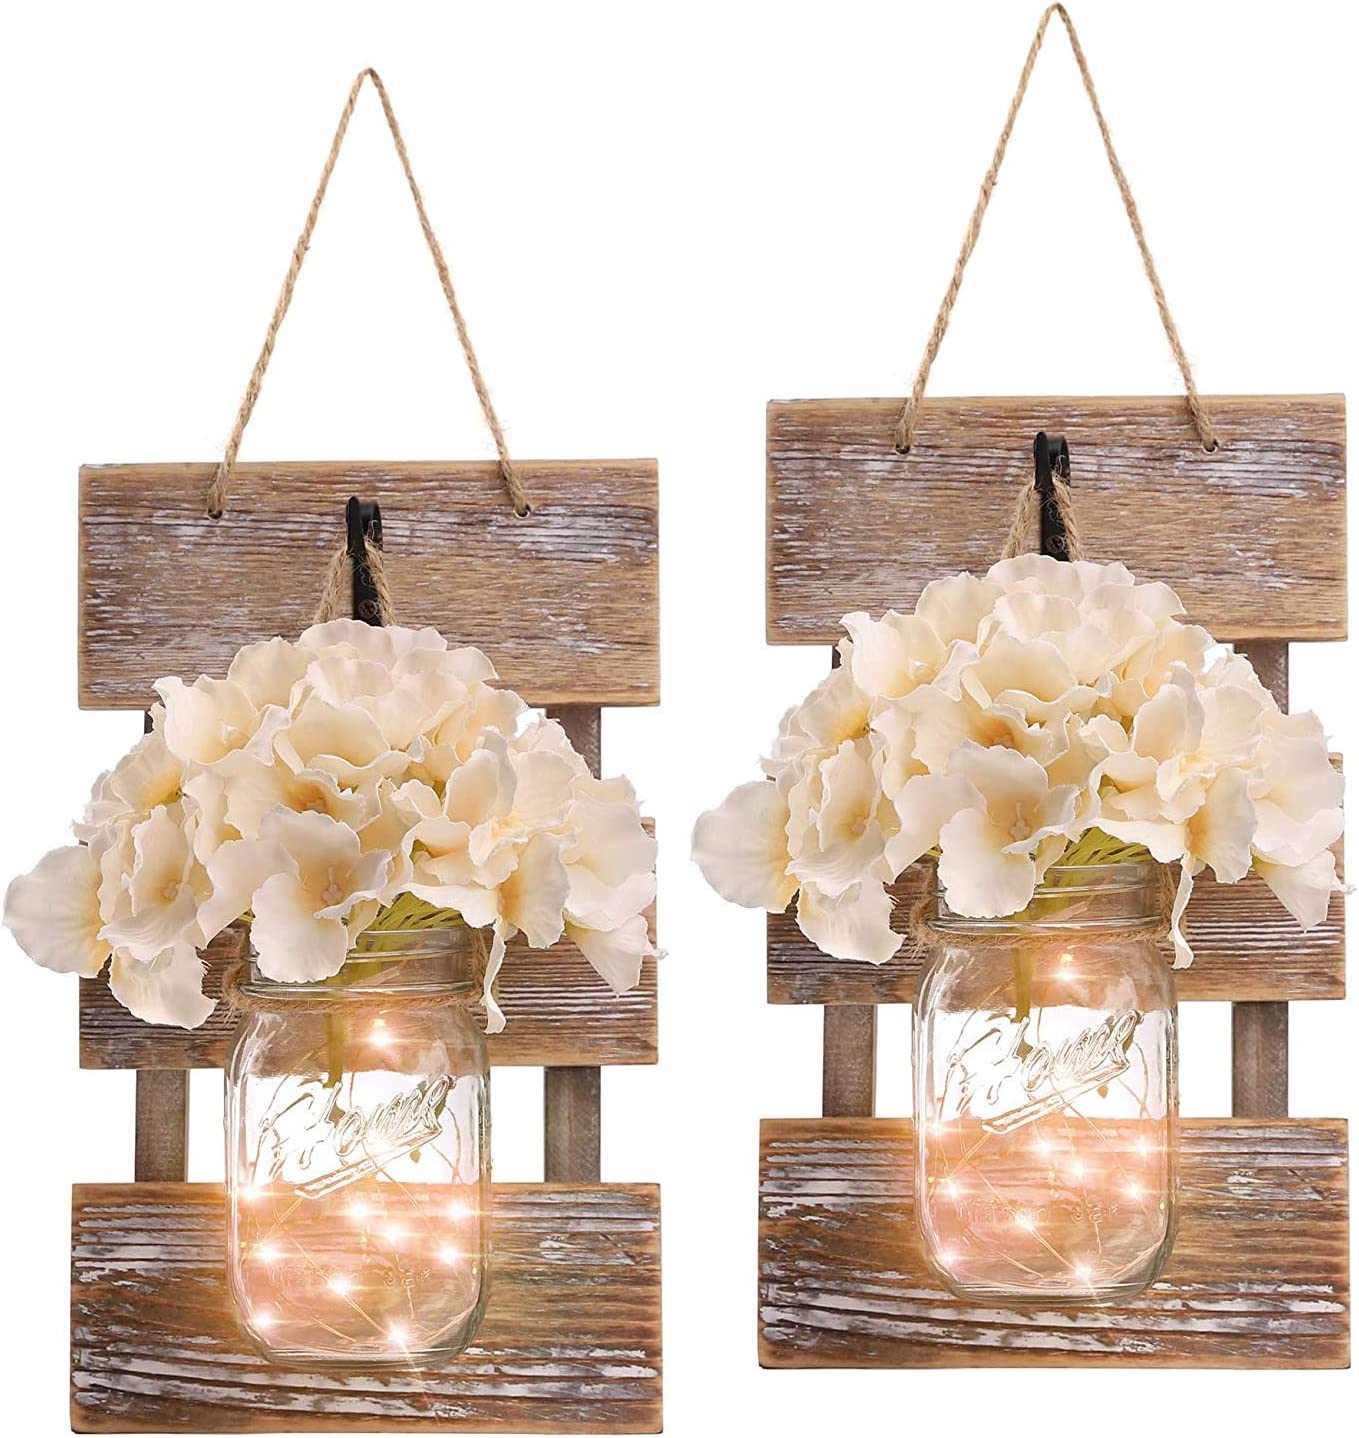 Mason Jar decor with lights - Mason Jar Farmhouse Style Wall Decor with 6-Hour Timer, Wall Sconce Battery Operated with Flower for Home,Living Room,Bedroom Decorations [Set of 2], Brown